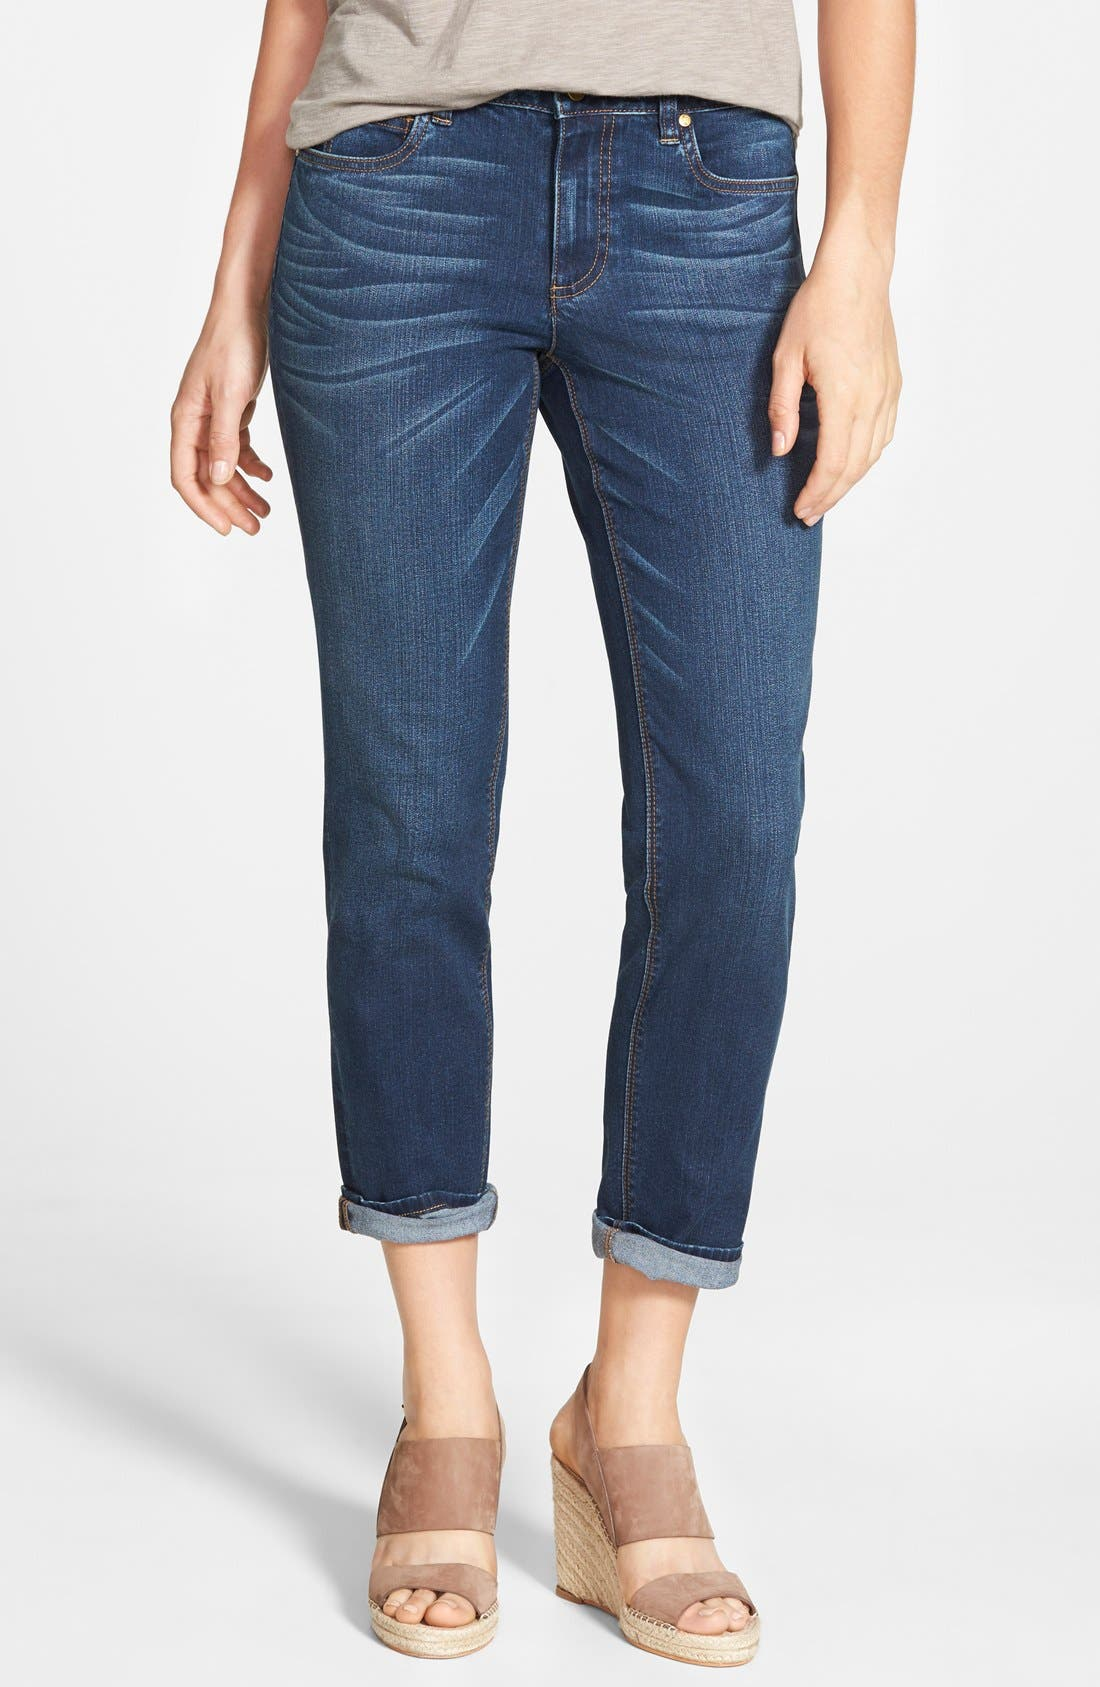 Alternate Image 1 Selected - Two by Vince Camuto Stretch Boyfriend Jeans (Authentic)